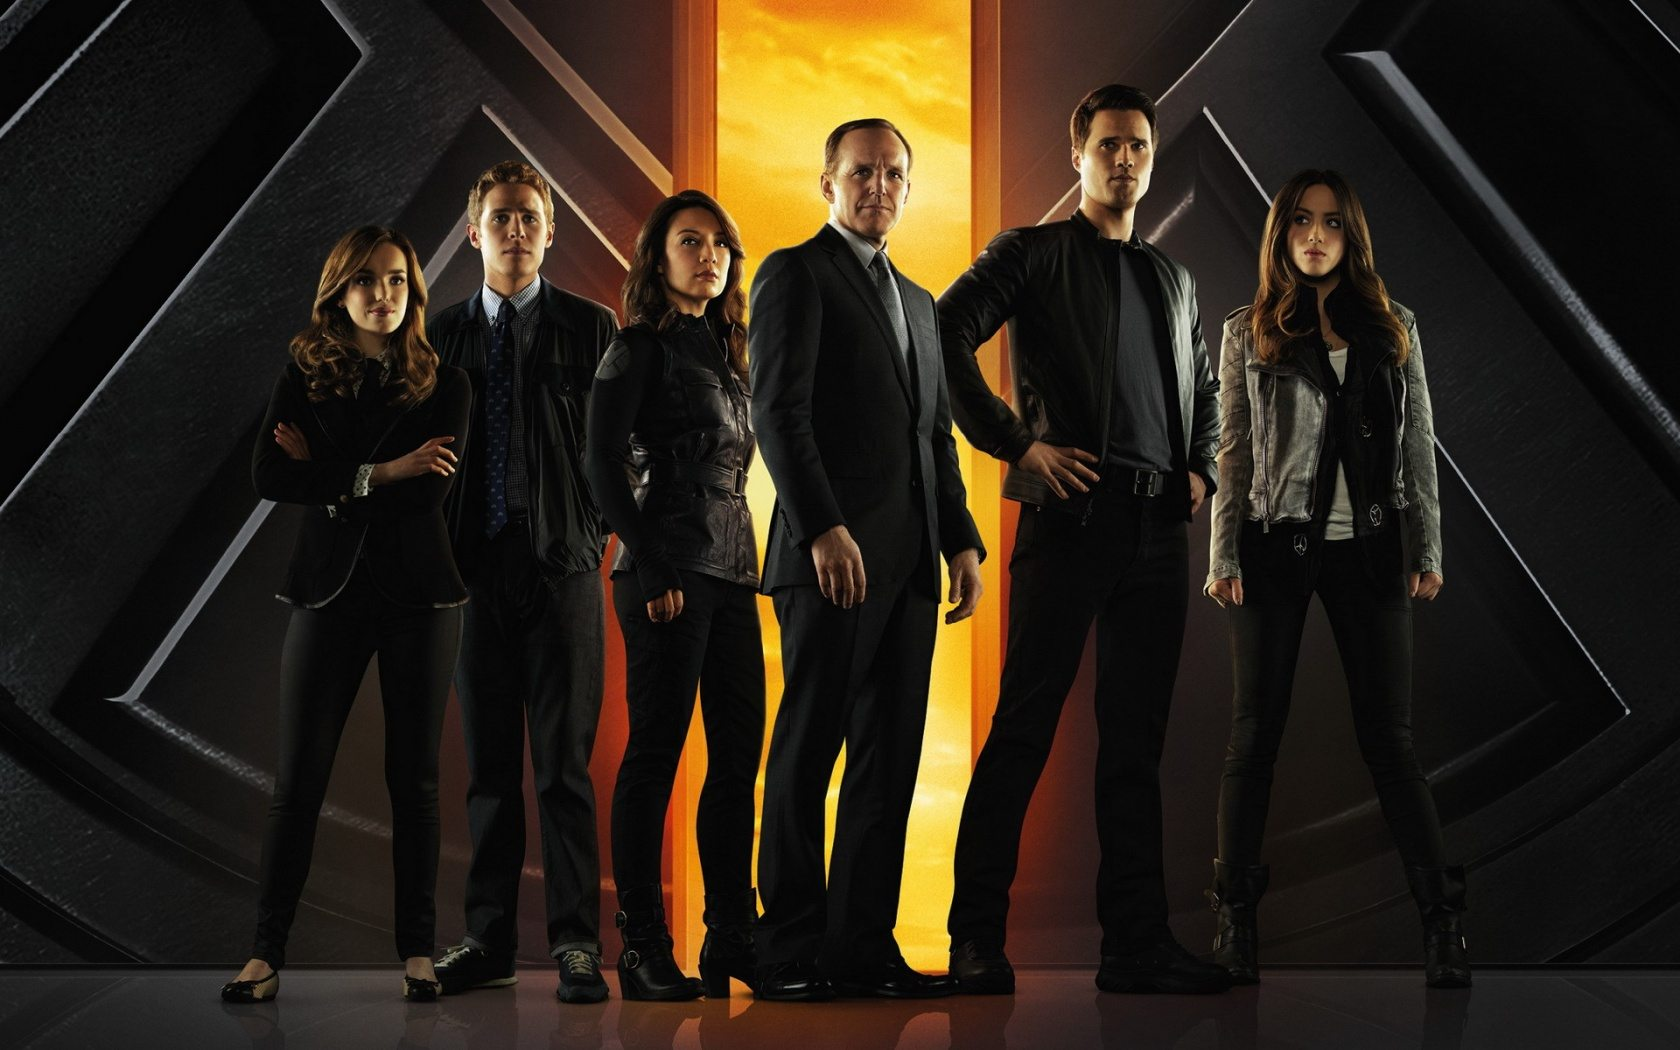 agents of shield wallpaper images pictures becuo